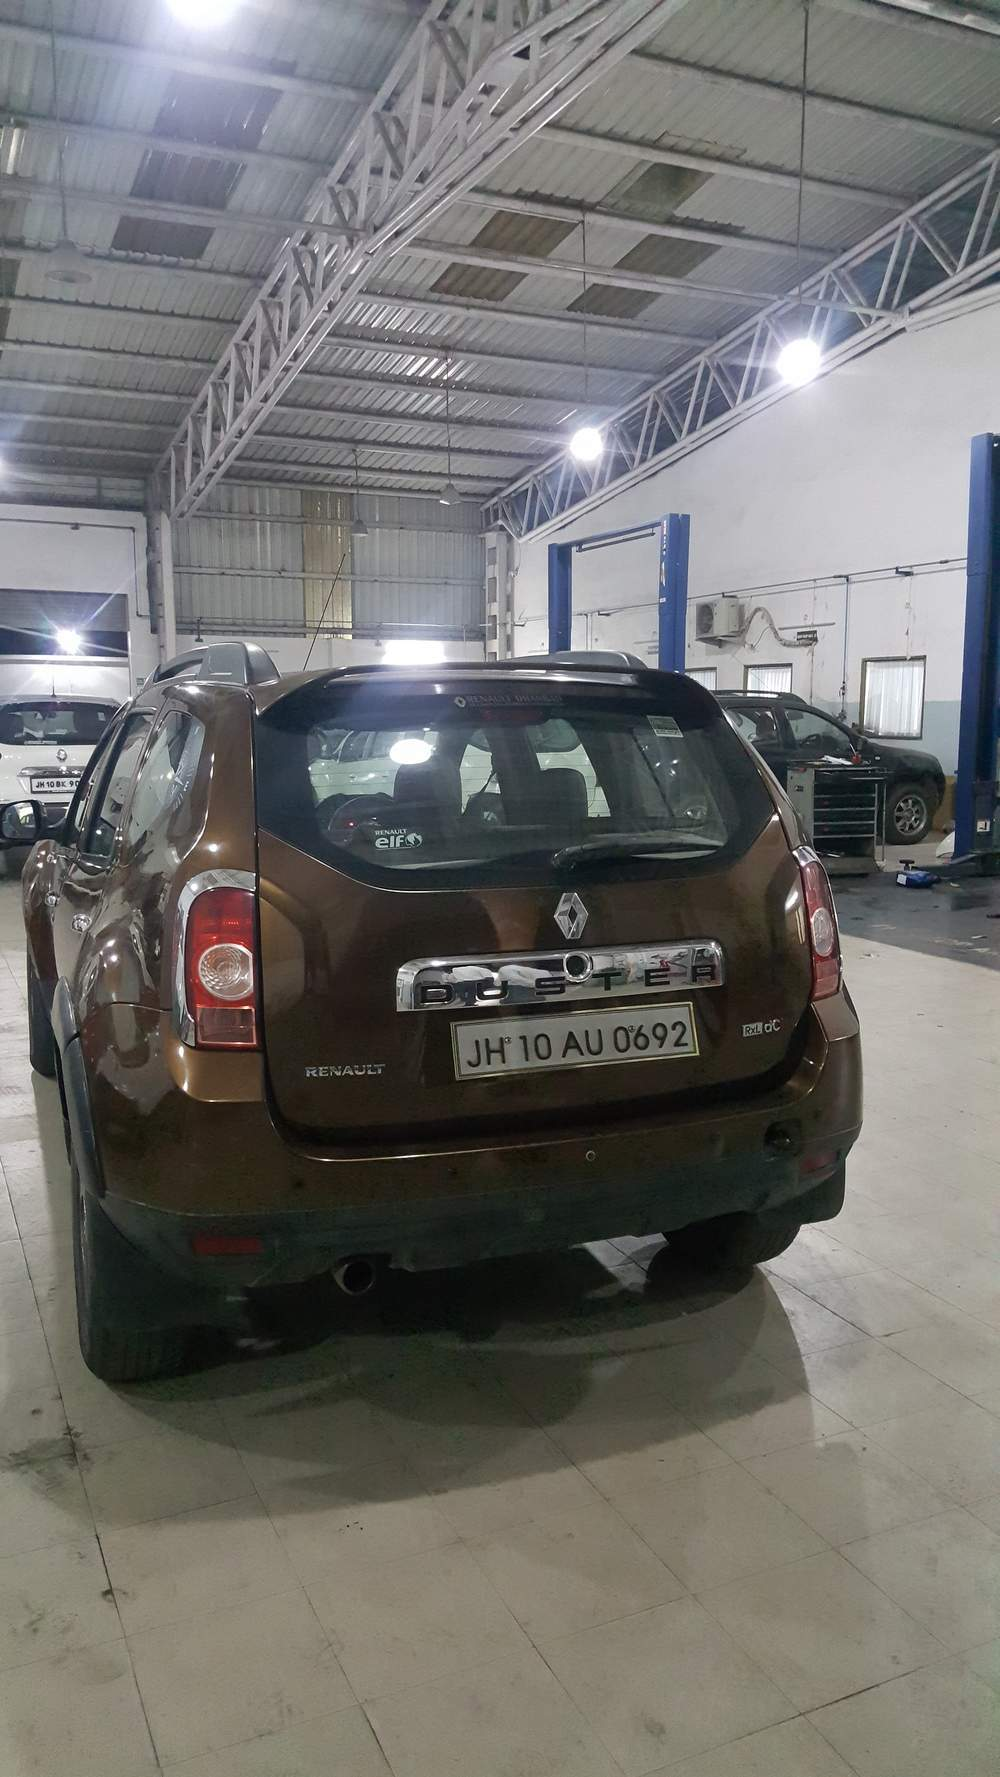 Used Cars in Dhanbad - Second Hand Cars for Sale in Dhanbad